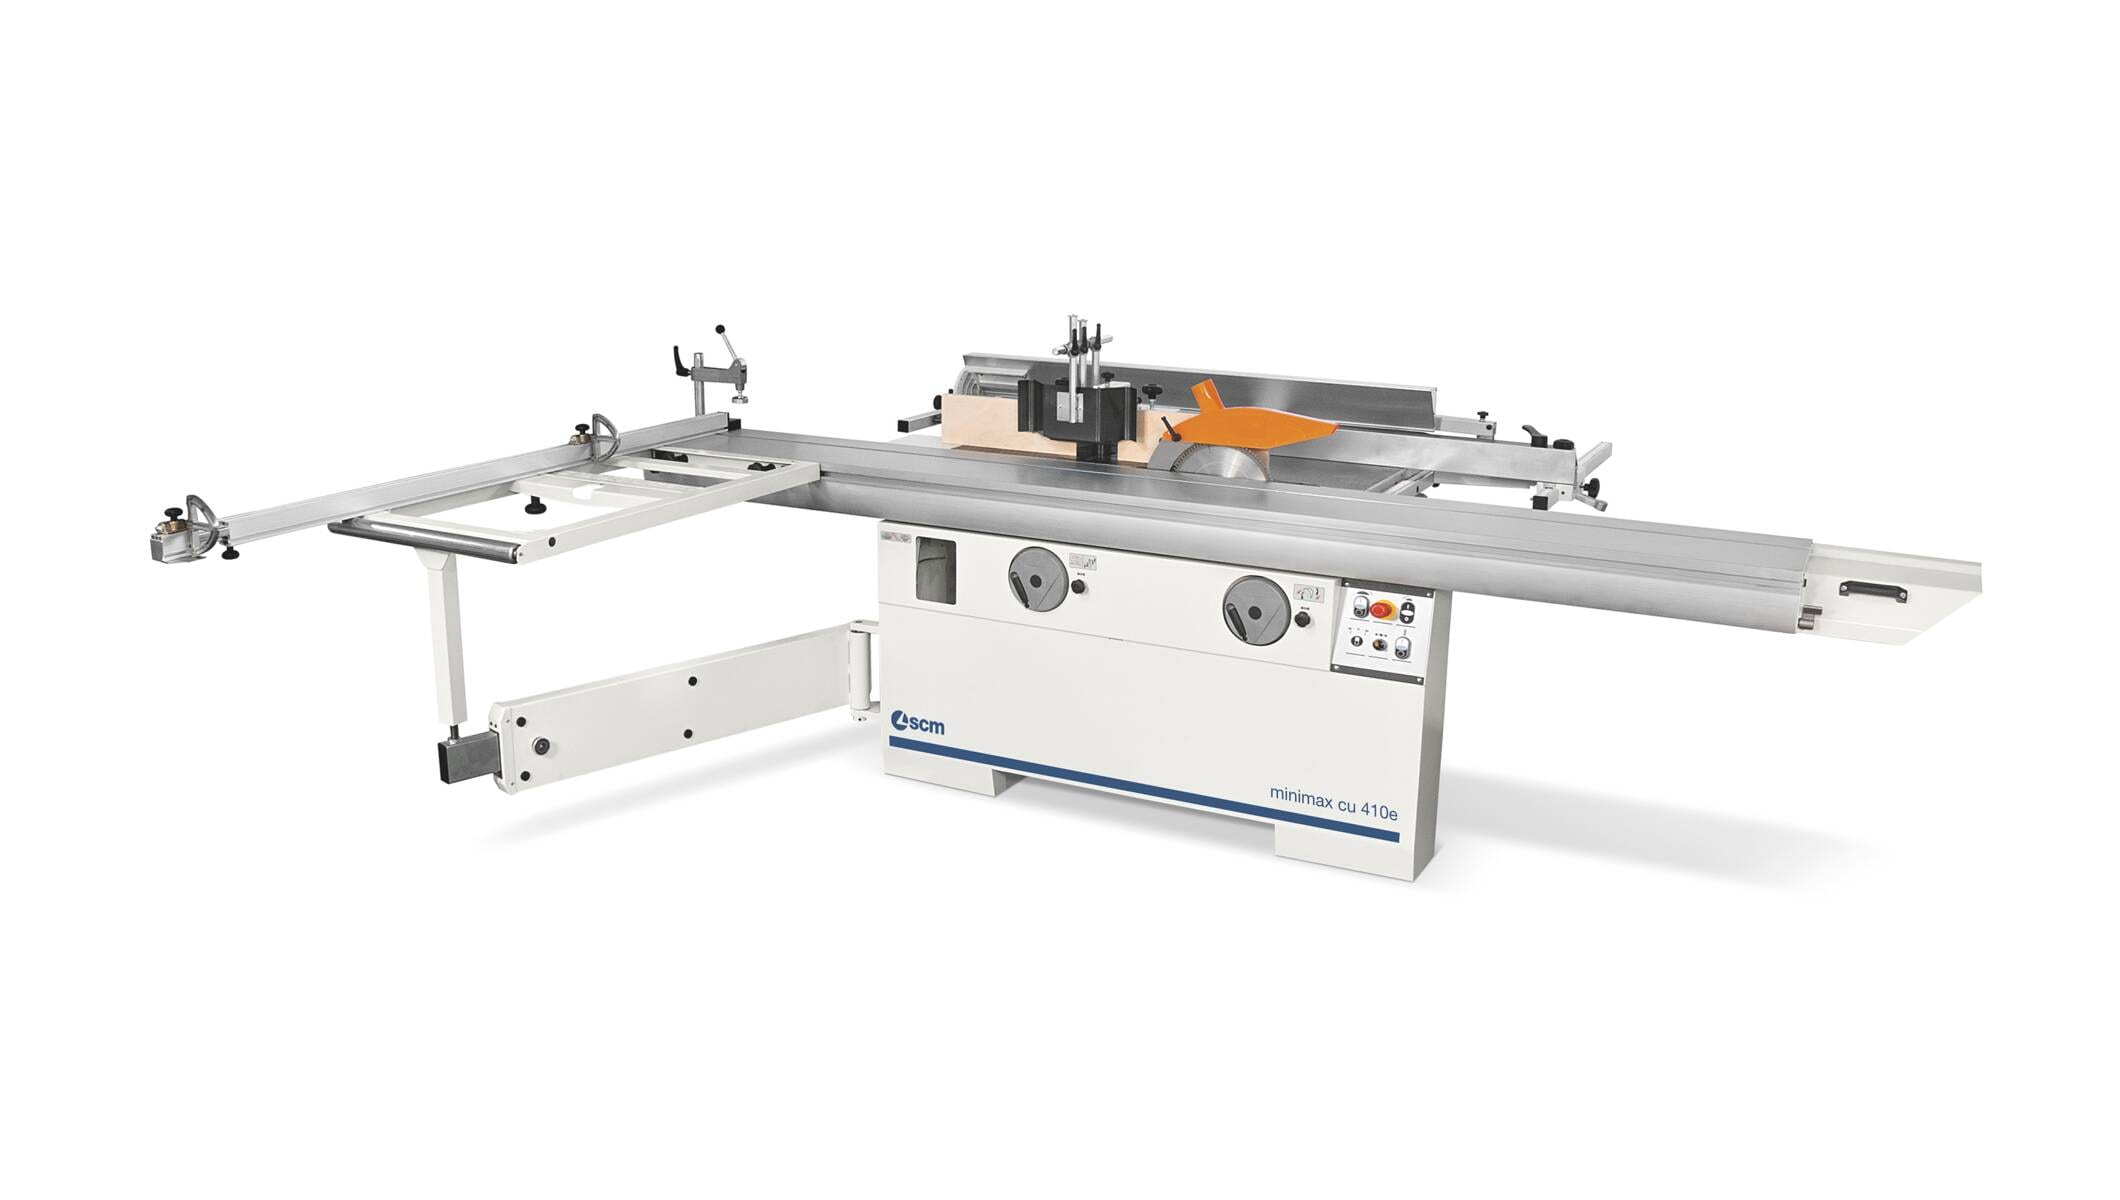 Joinery machines - Universal combination machines - minimax cu 410e